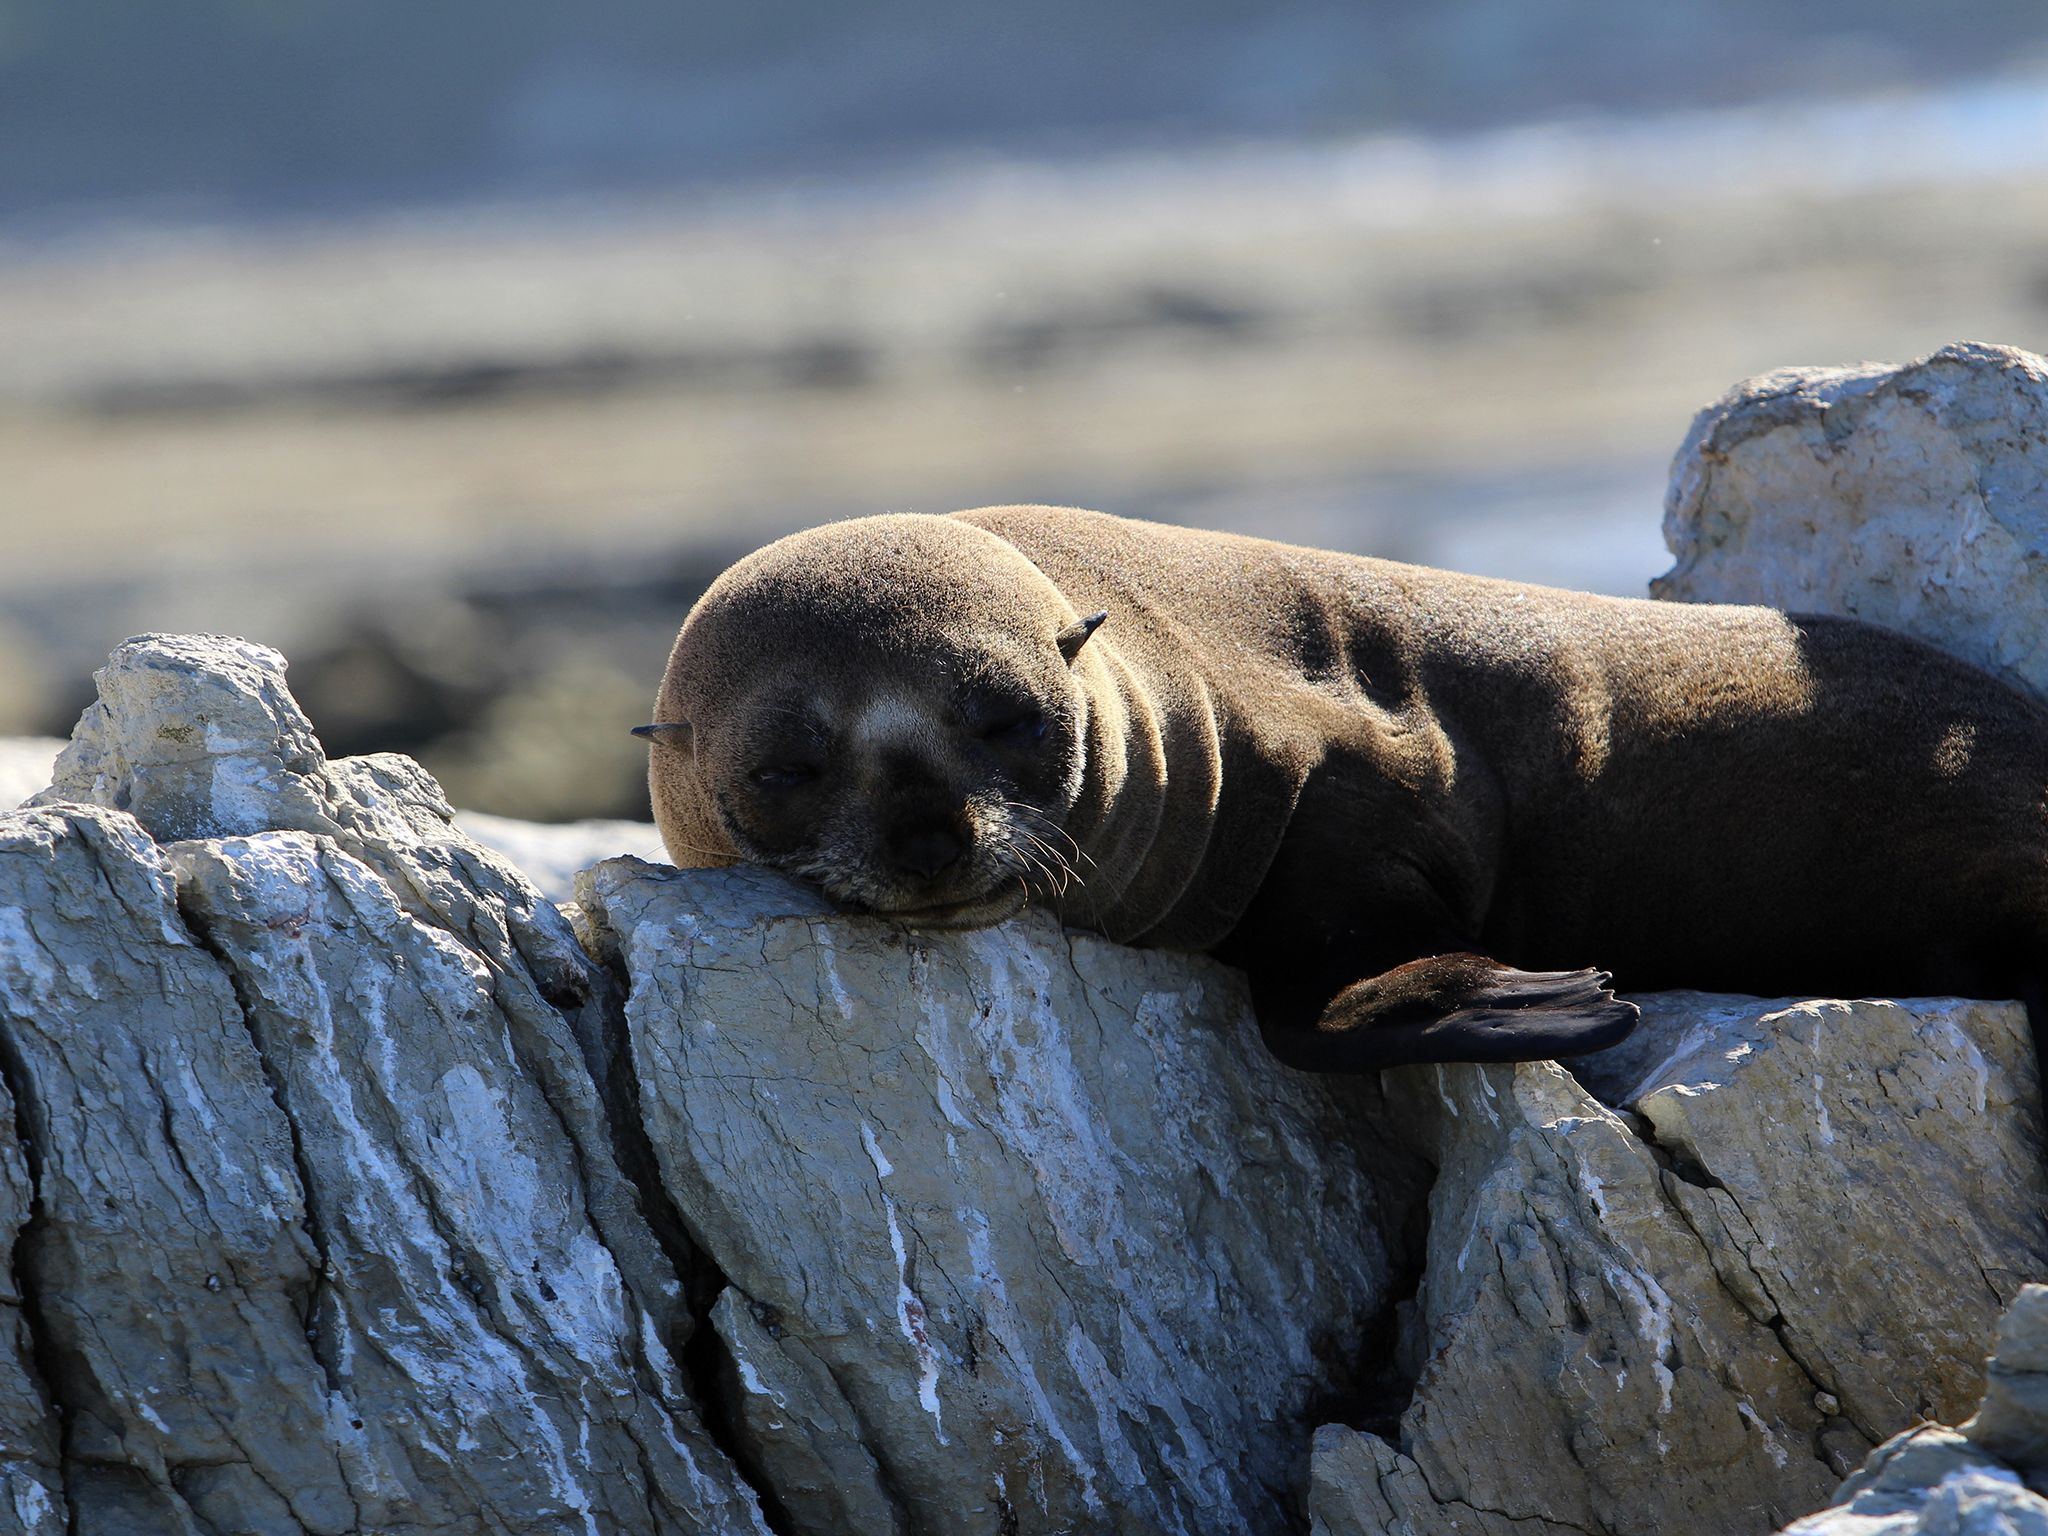 Young fur seal pup resting on a coastal rock formation on the beaches of Kaikoura, New Zealand, o... [Photo of the day - مارس 2015]